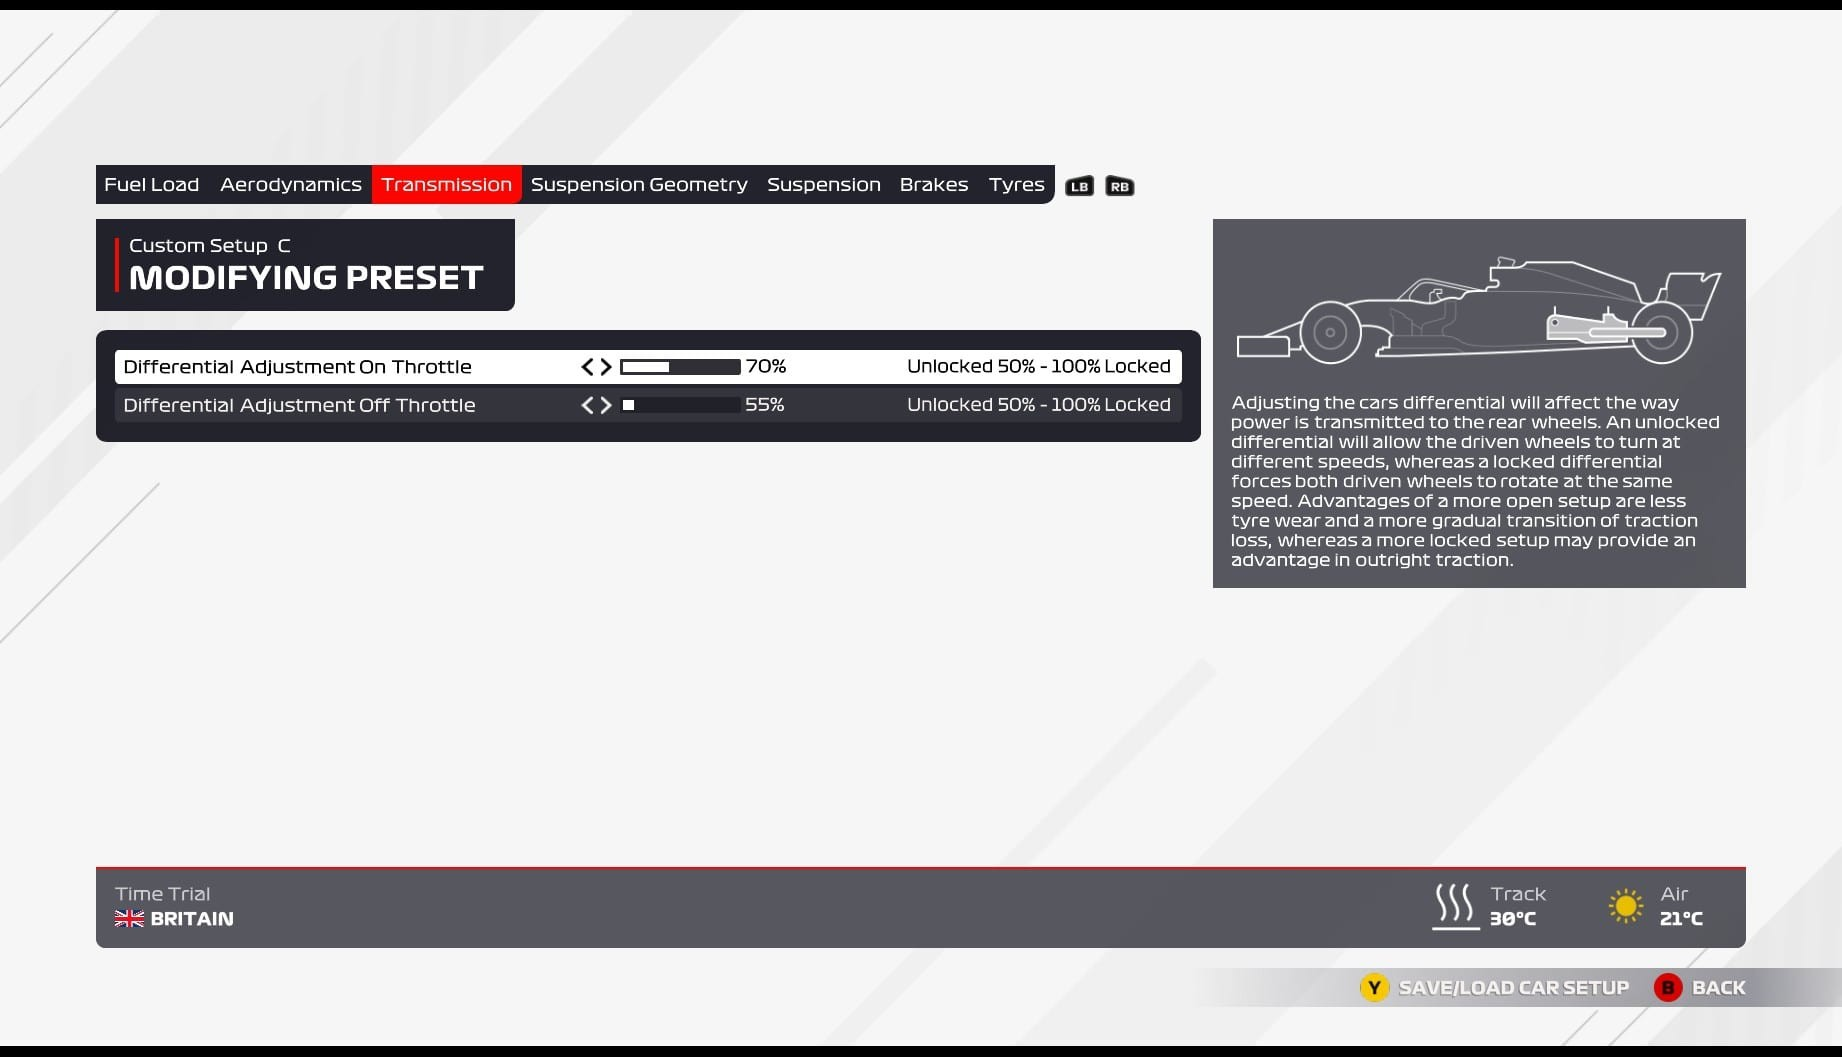 An image of the transmission page of the F1 2021 car setup screen.